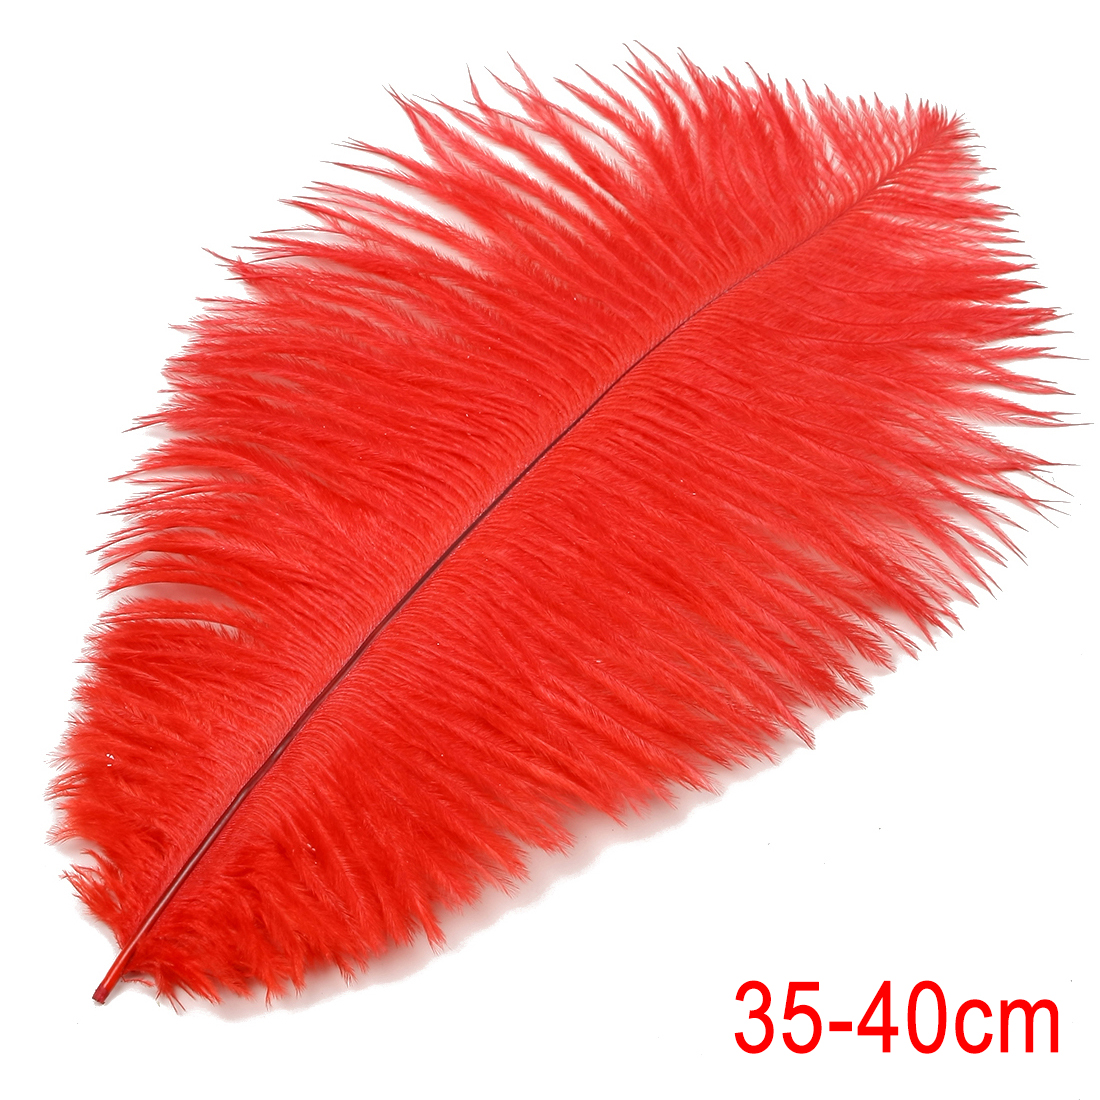 14-16inch / 35-40cm Ostrich Feather for Wedding Party Decoration Red